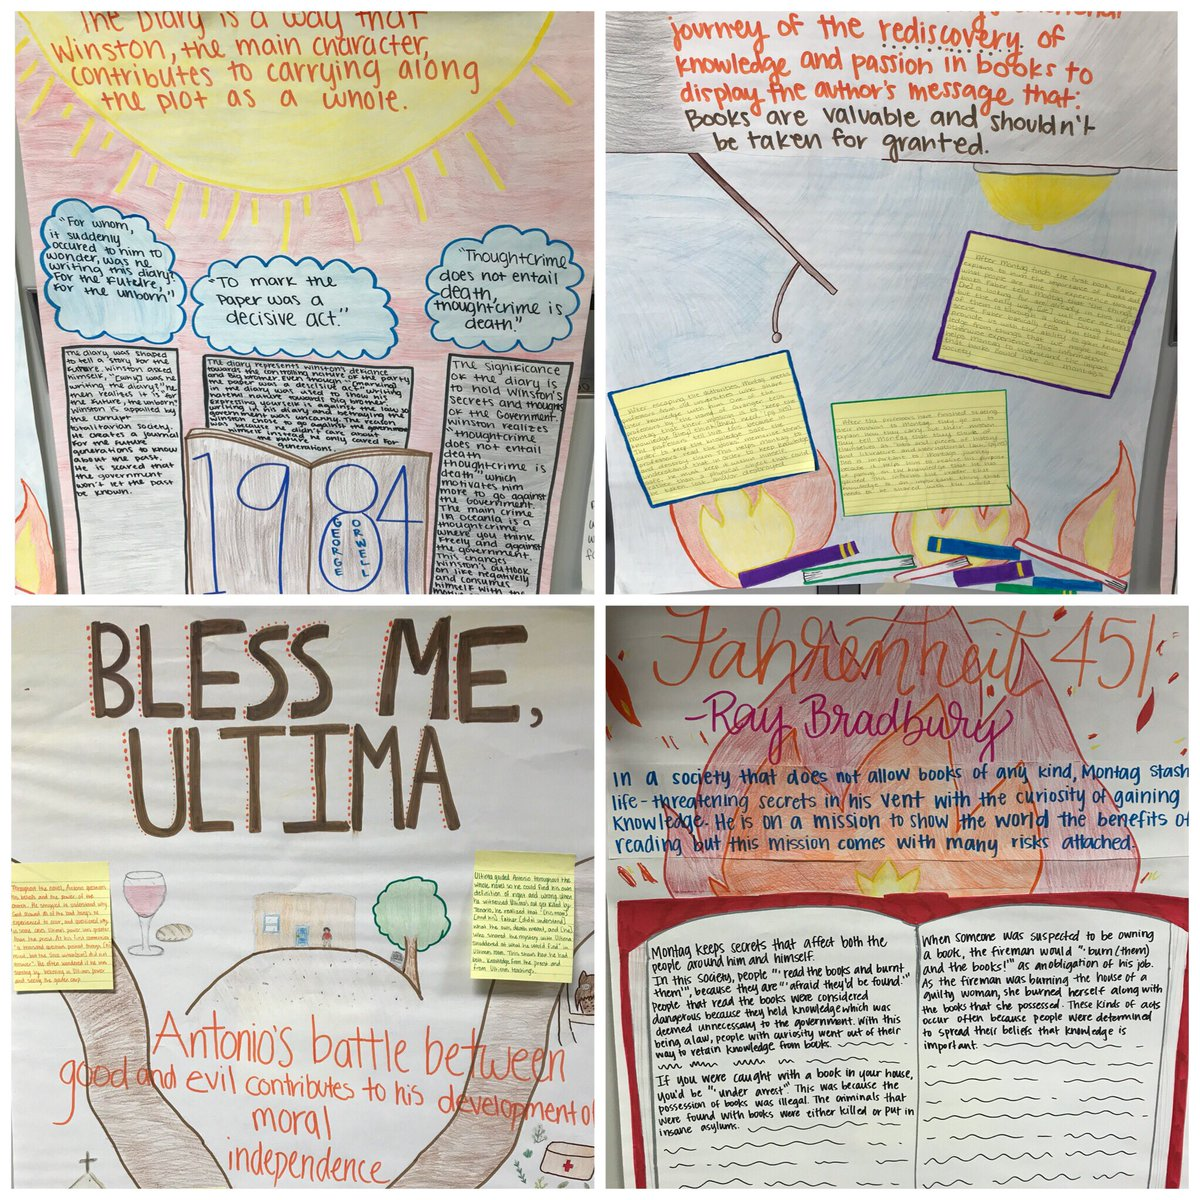 Business Essay Structure Karry Dornak On Twitter Blown Away By The Graphic Essay Review Posters My  Ss Designed And Wrote   Wdkclt  How To Write A Thesis Sentence For An Essay also Health And Fitness Essays Karry Dornak On Twitter Blown Away By The Graphic Essay Review  Modern Science Essay